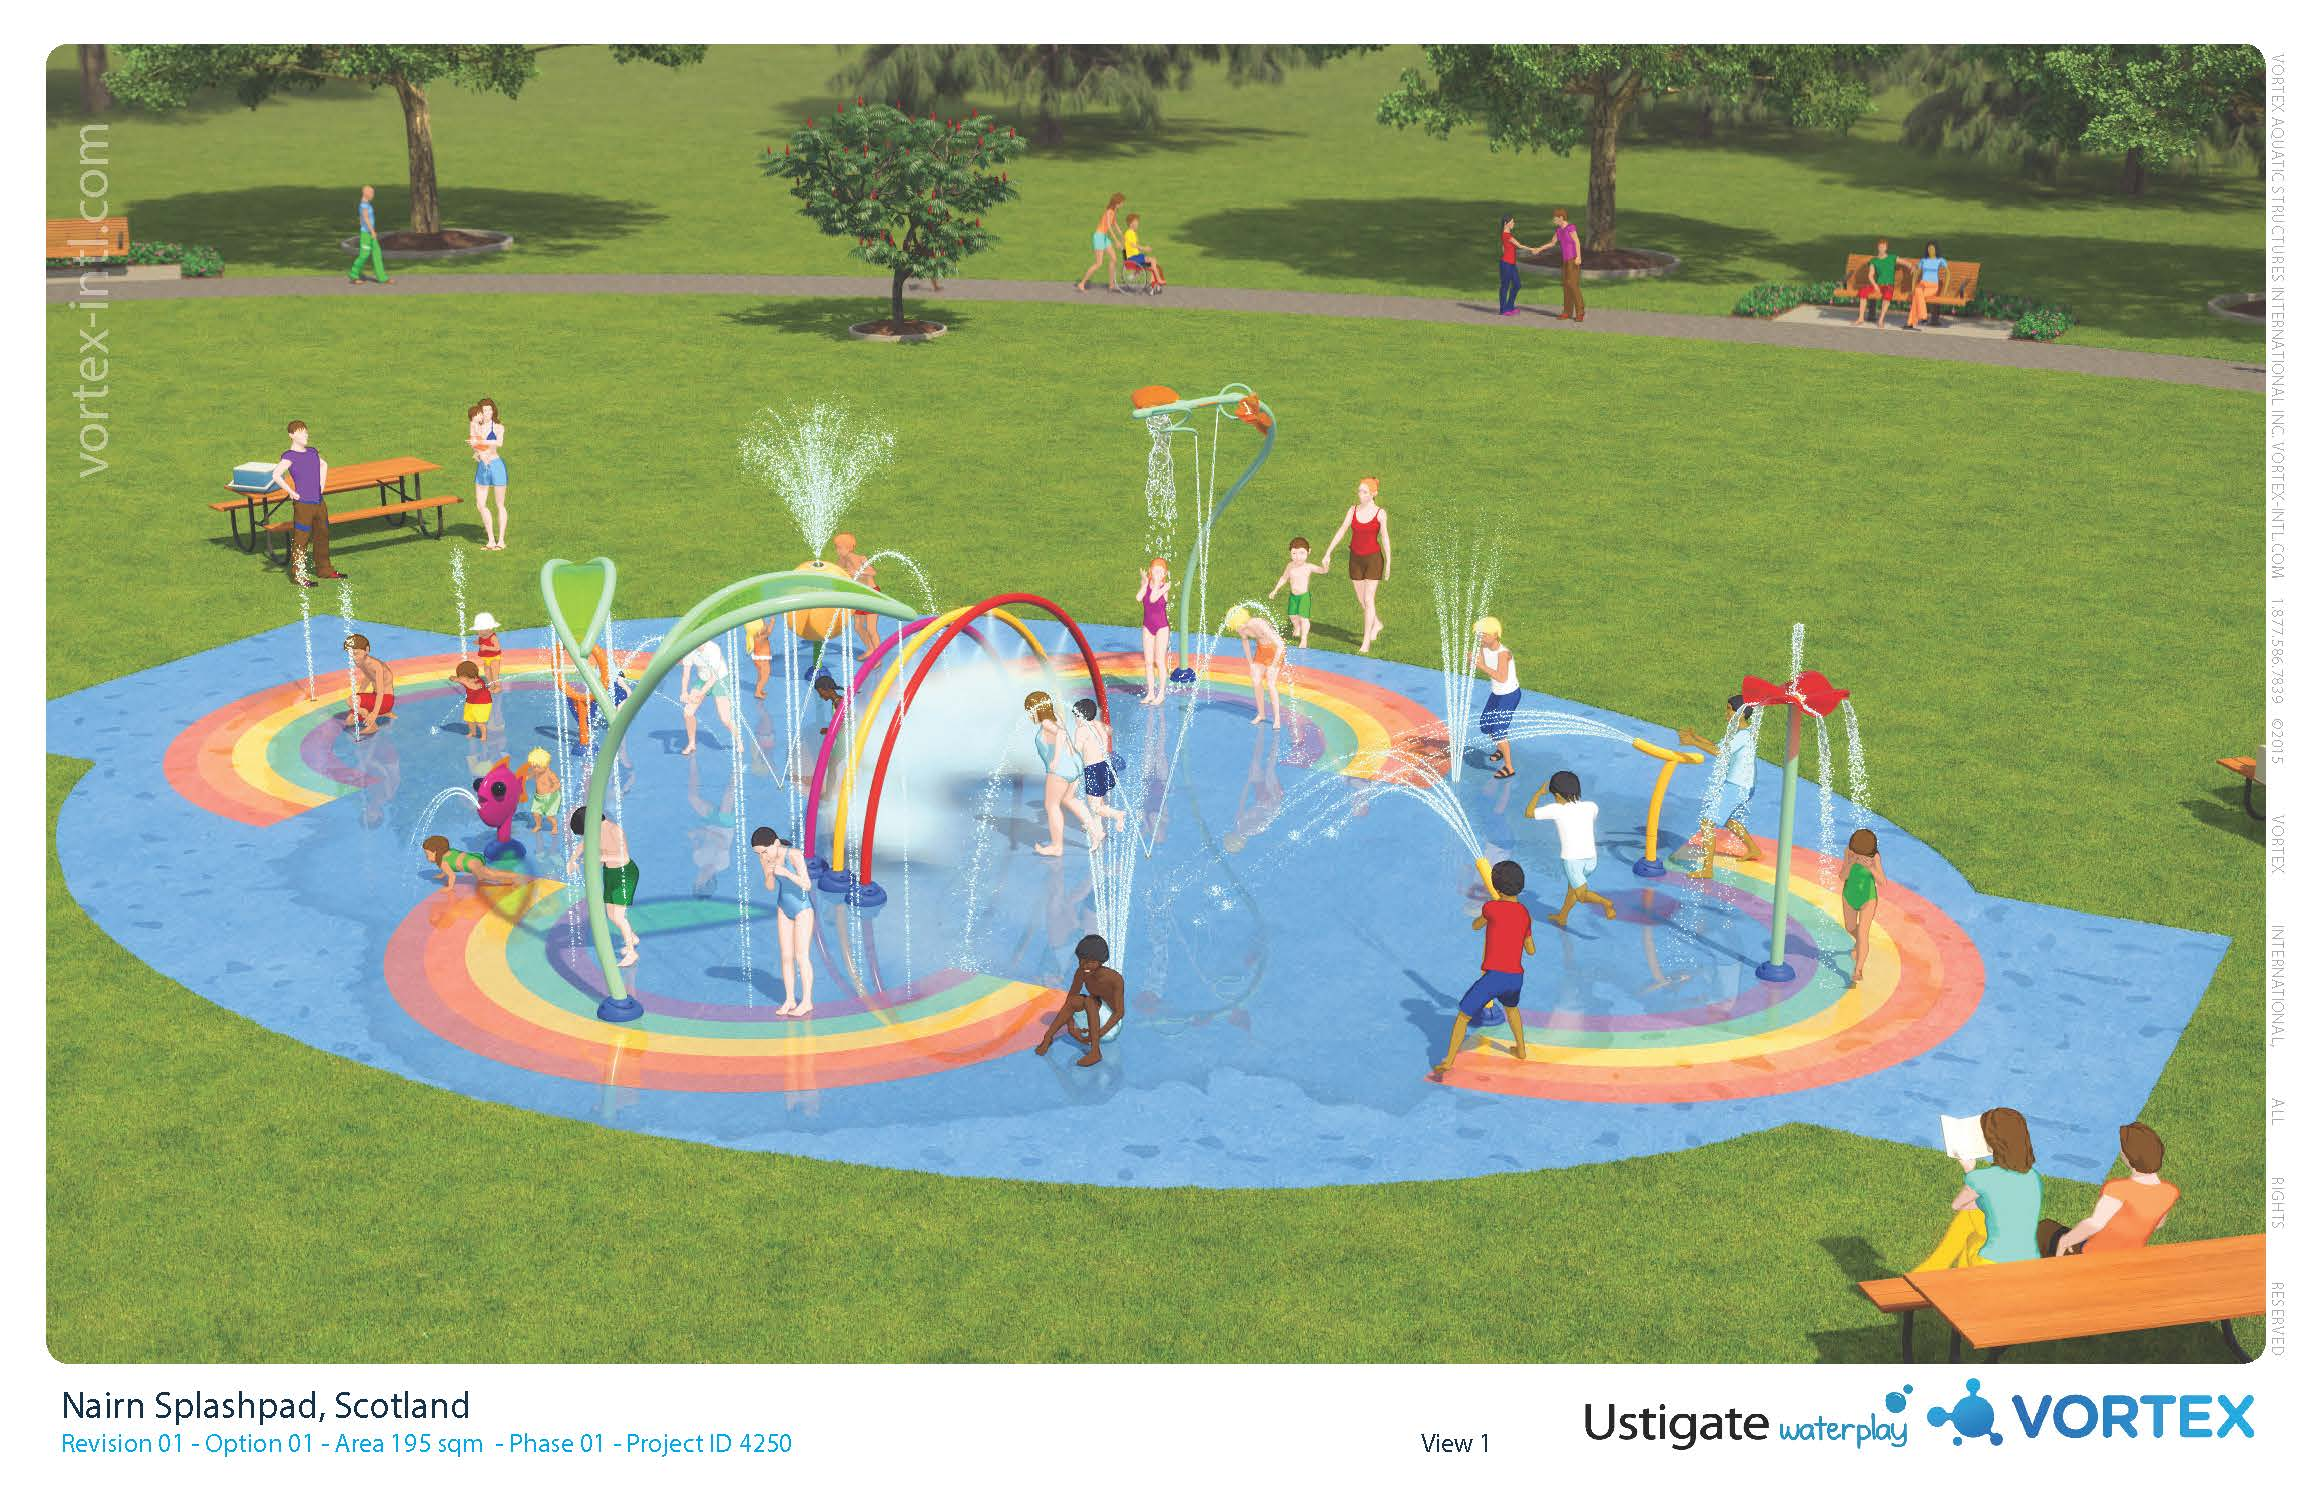 An artist's impression of Nairn's new splash pad in memory of Hamish Hey